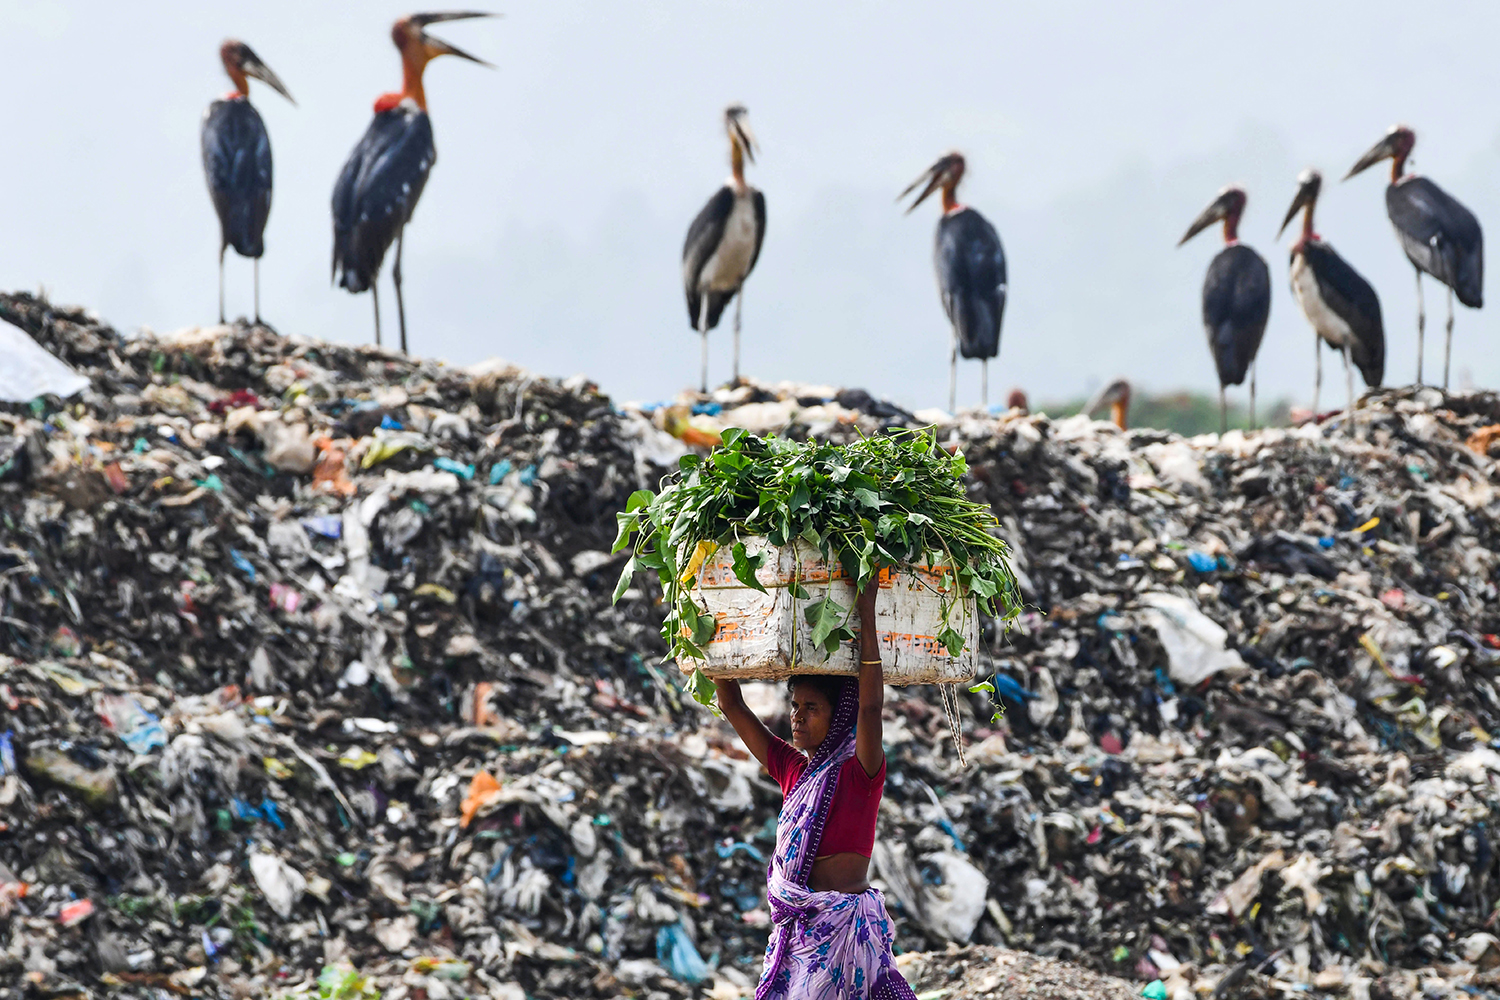 A woman carries food for her cattle past storks standing on top of a disposal site in Guwahati, India, on June 4. BIJU BORO/AFP via Getty Images